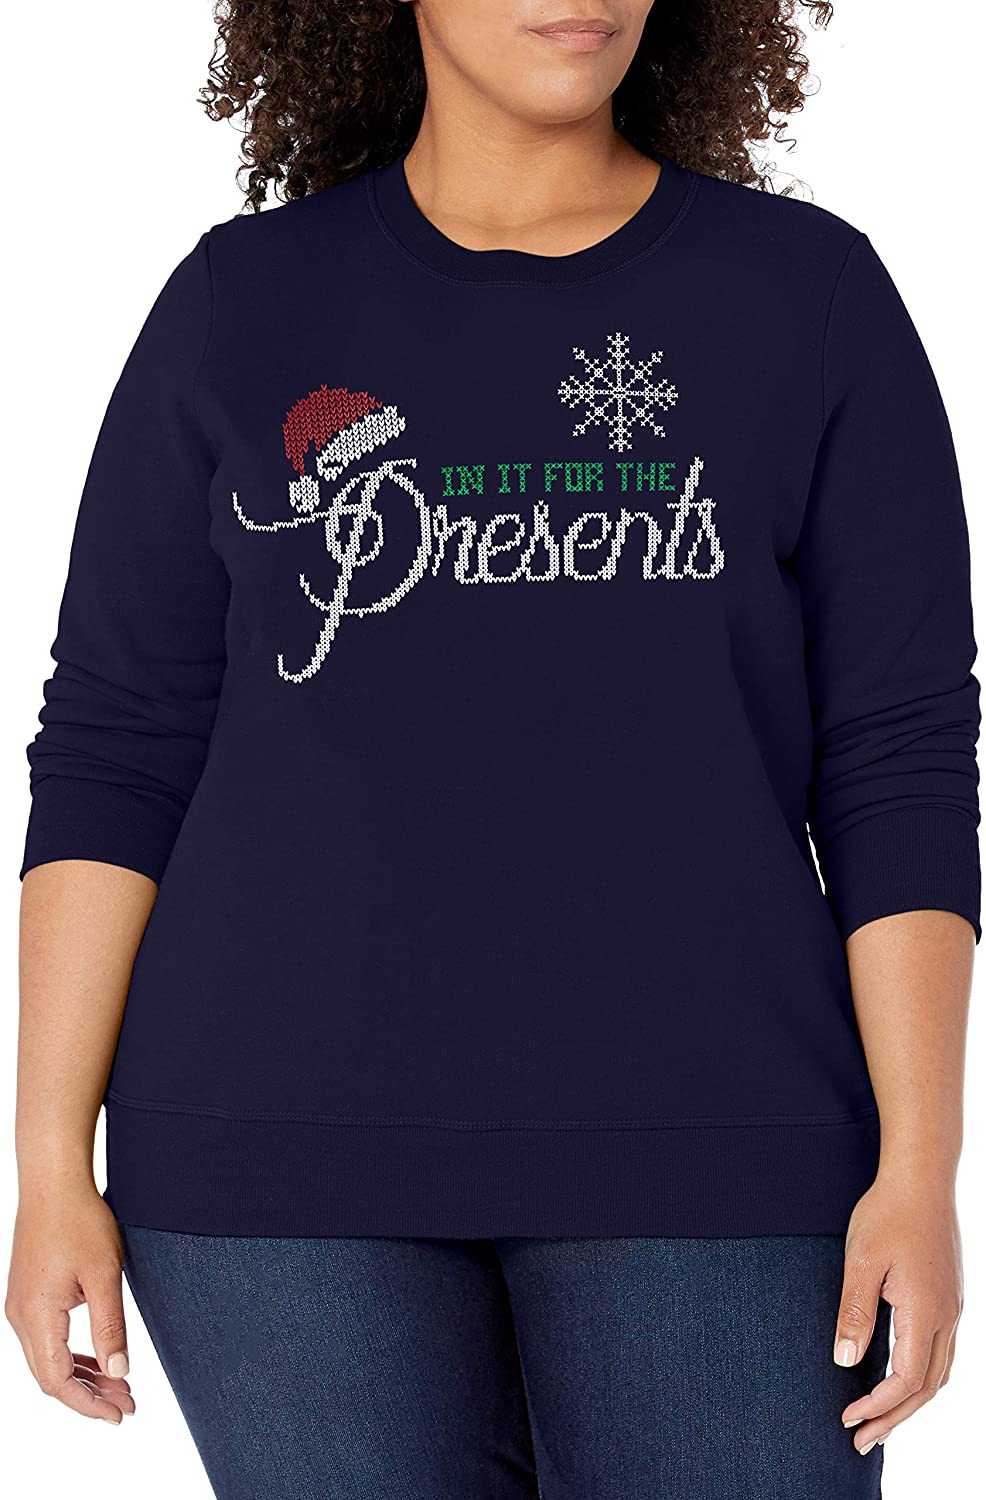 Cute Christmas Sweaters 06